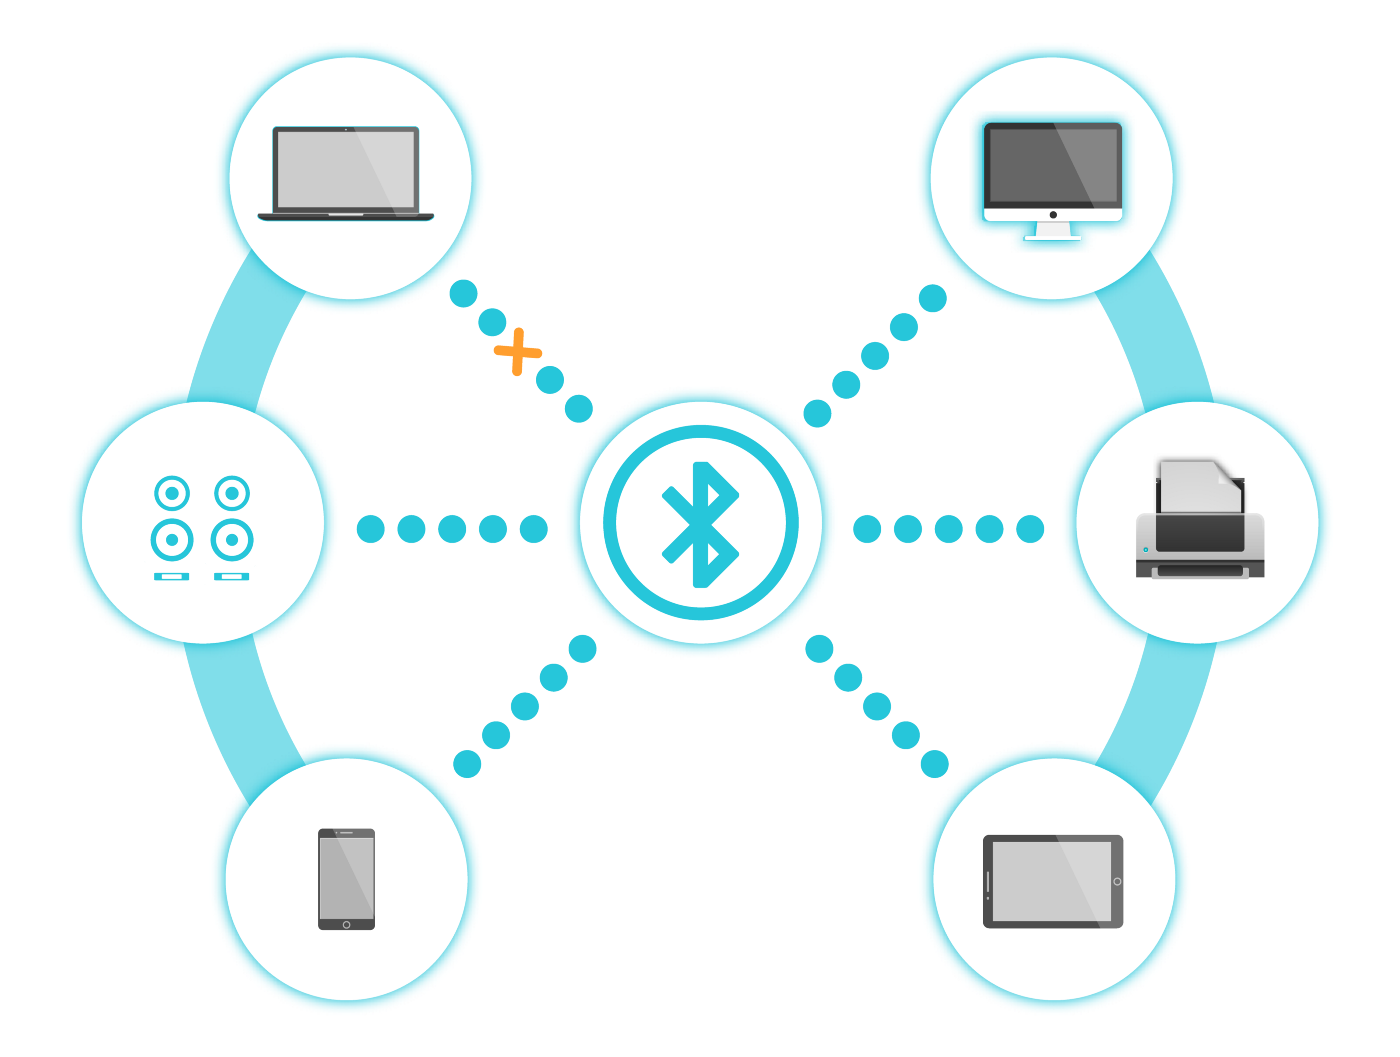 A sketch with bluetooth icon in the middle and connections to phone, pc, printer shown